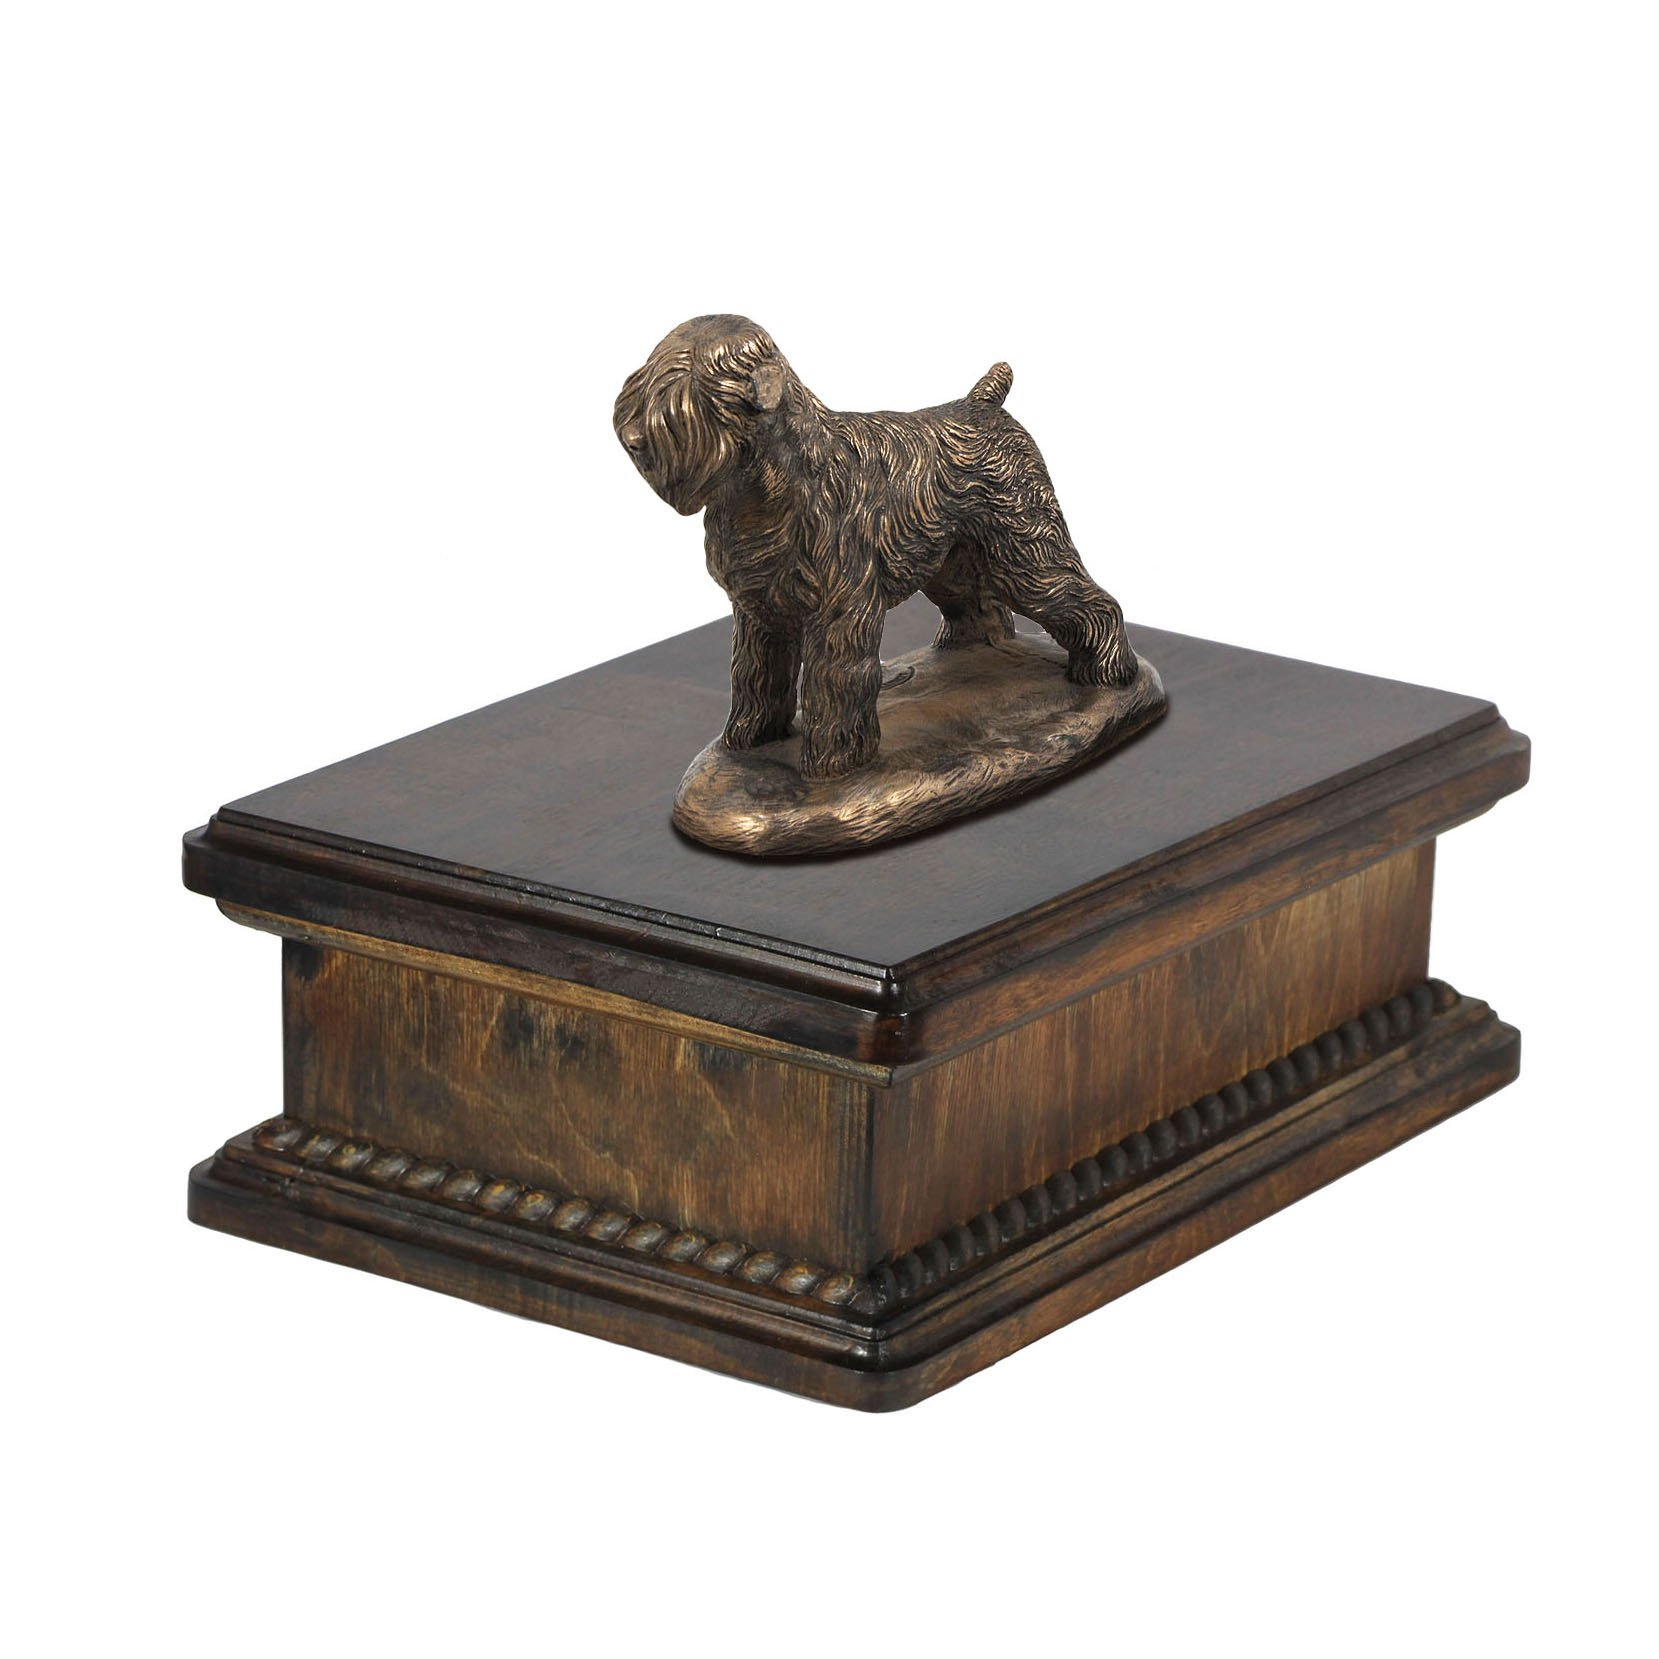 Black Russian Terrier, memorial, urn for dog's ashes, with dog statue, exclusive, ArtDog